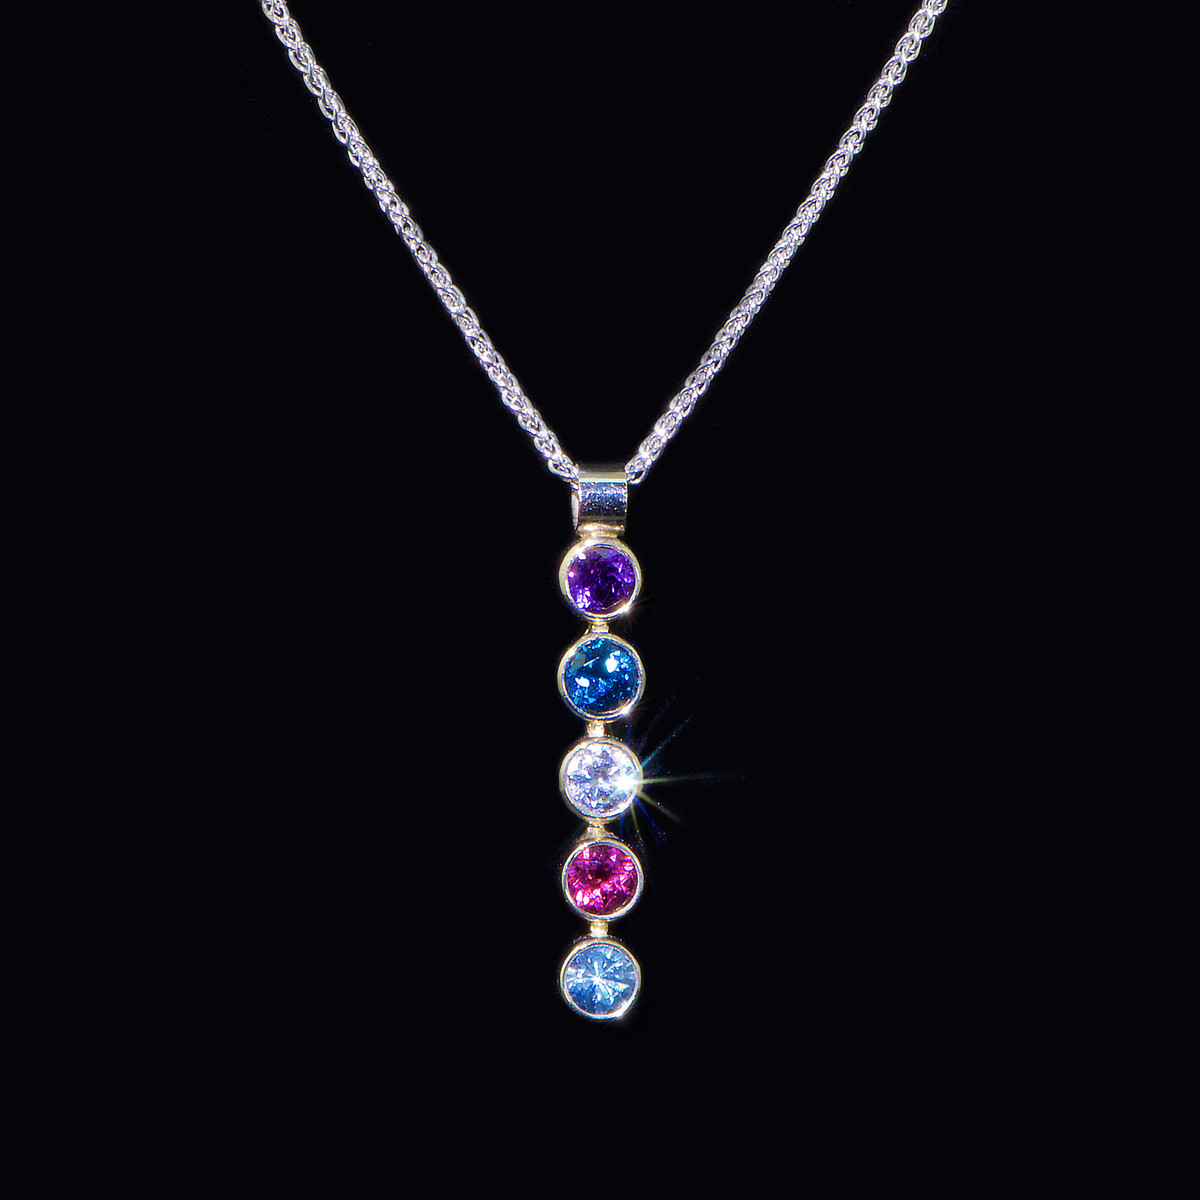 Mother's Jewelry Birthstone Necklace